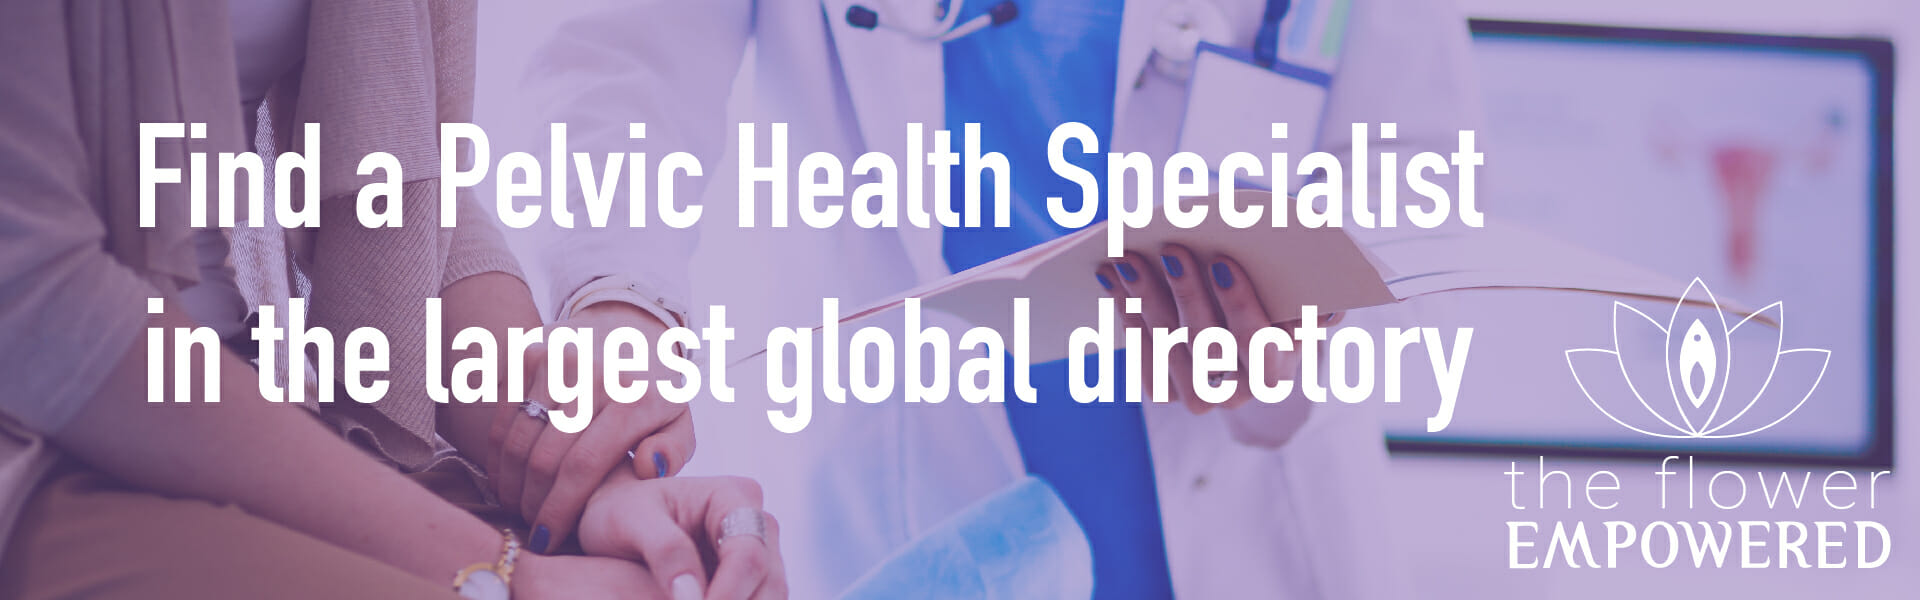 World's largest specialist directory | Pelvic Health Specialist